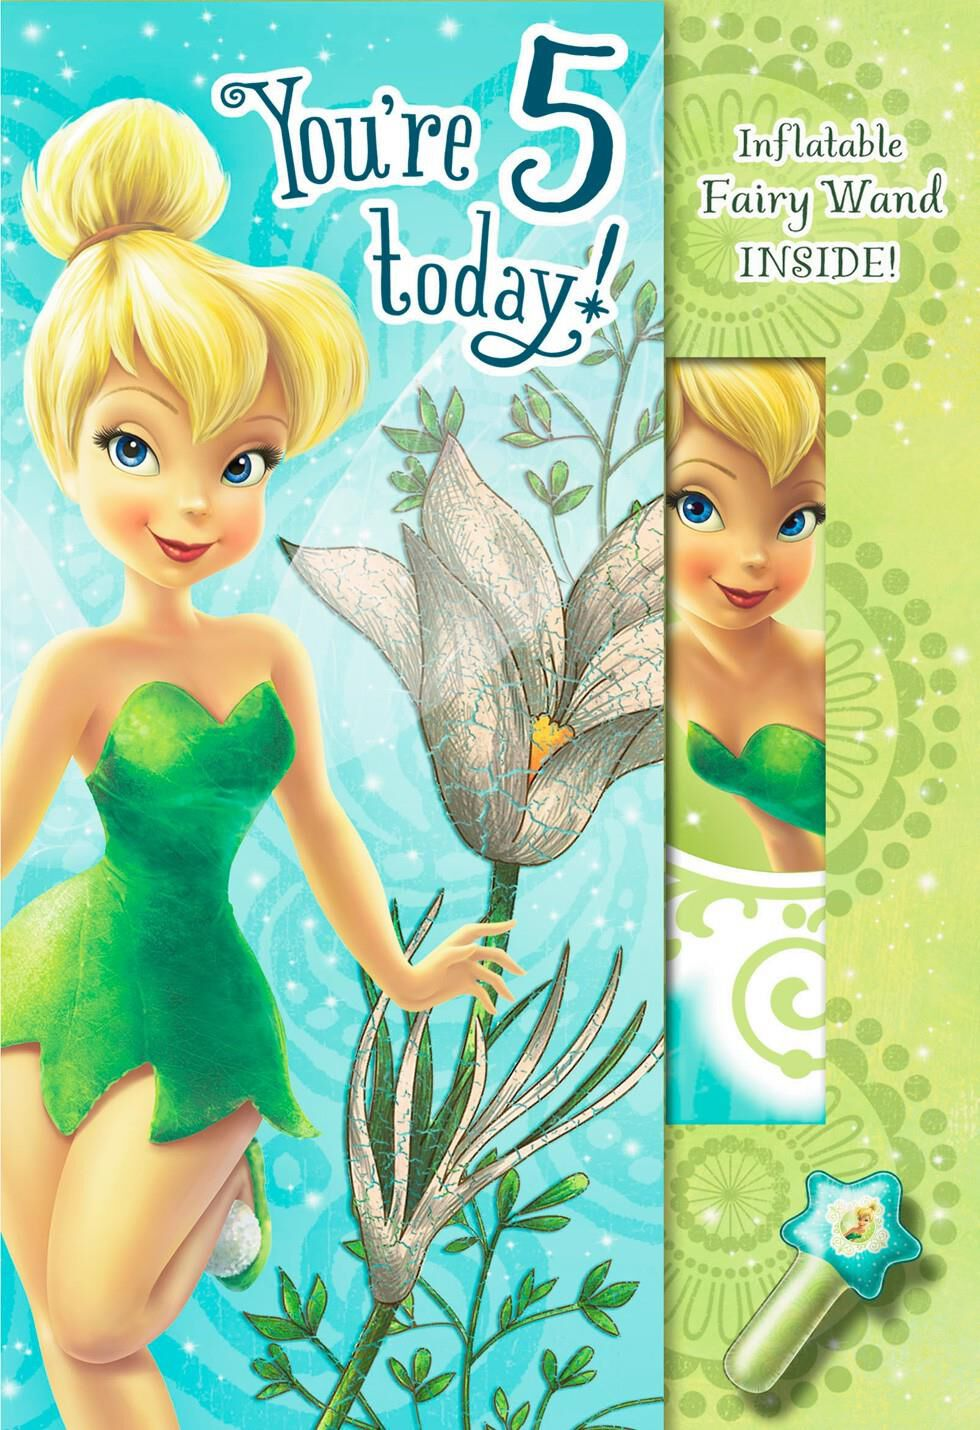 Tinker Bell 5th Birthday Card With Inflatable Fairy Wand – Tinkerbell Birthday Card